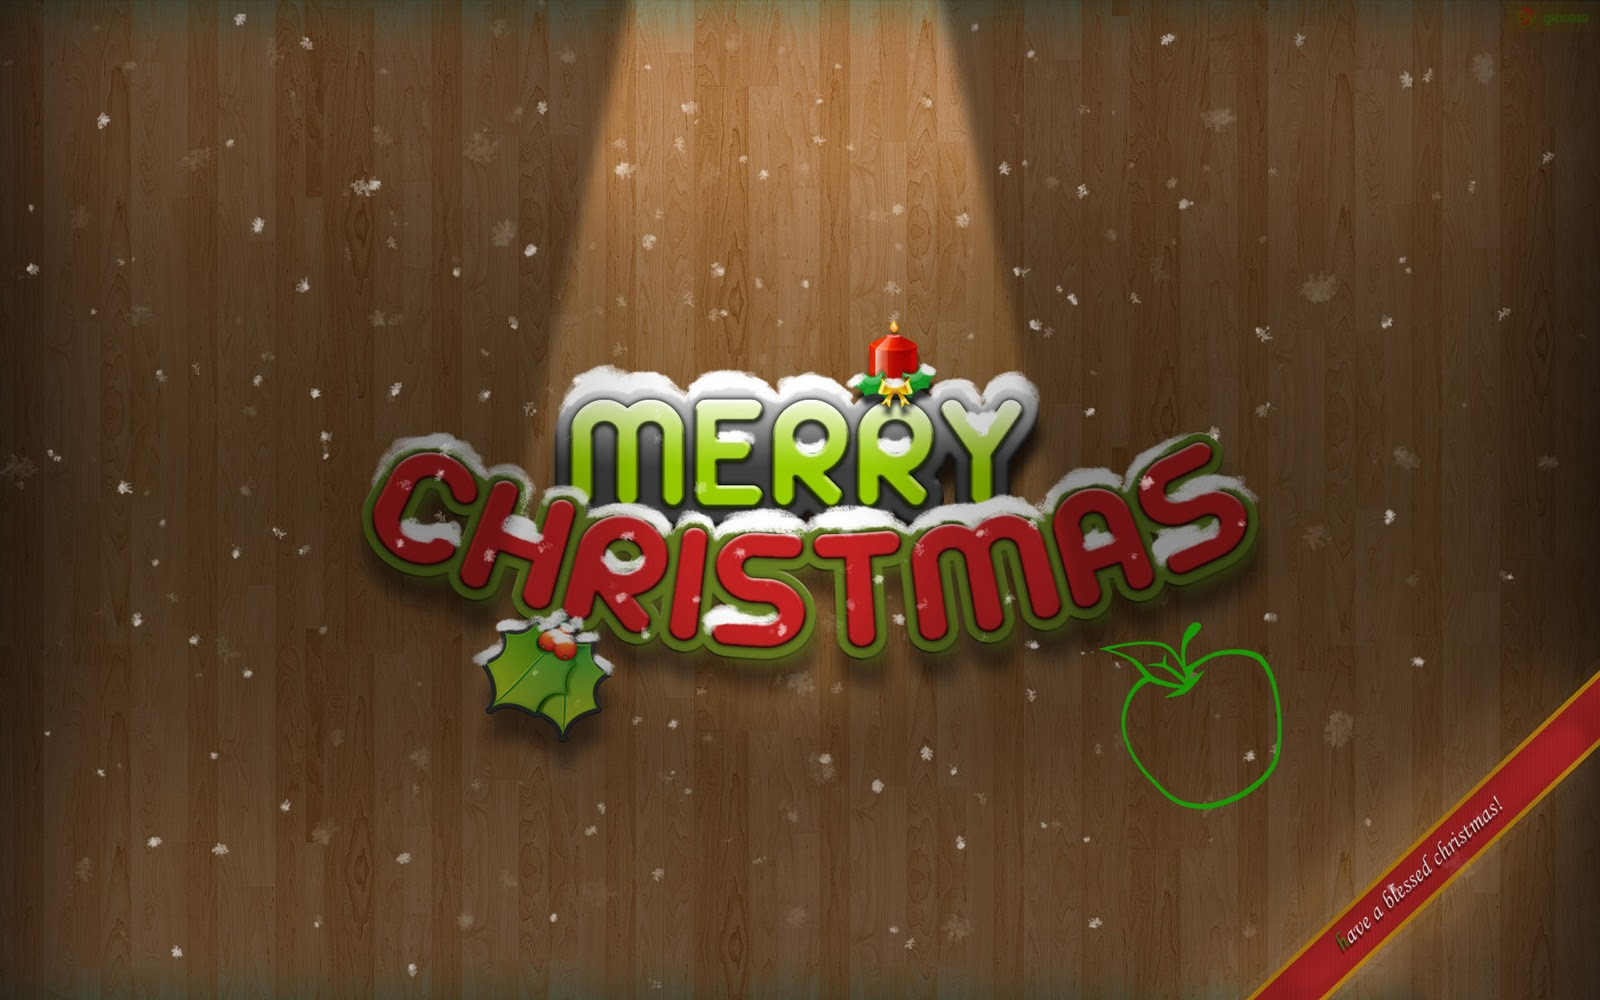 merry christmas desktop wallpaper christmaswallpapers18 1600x1000